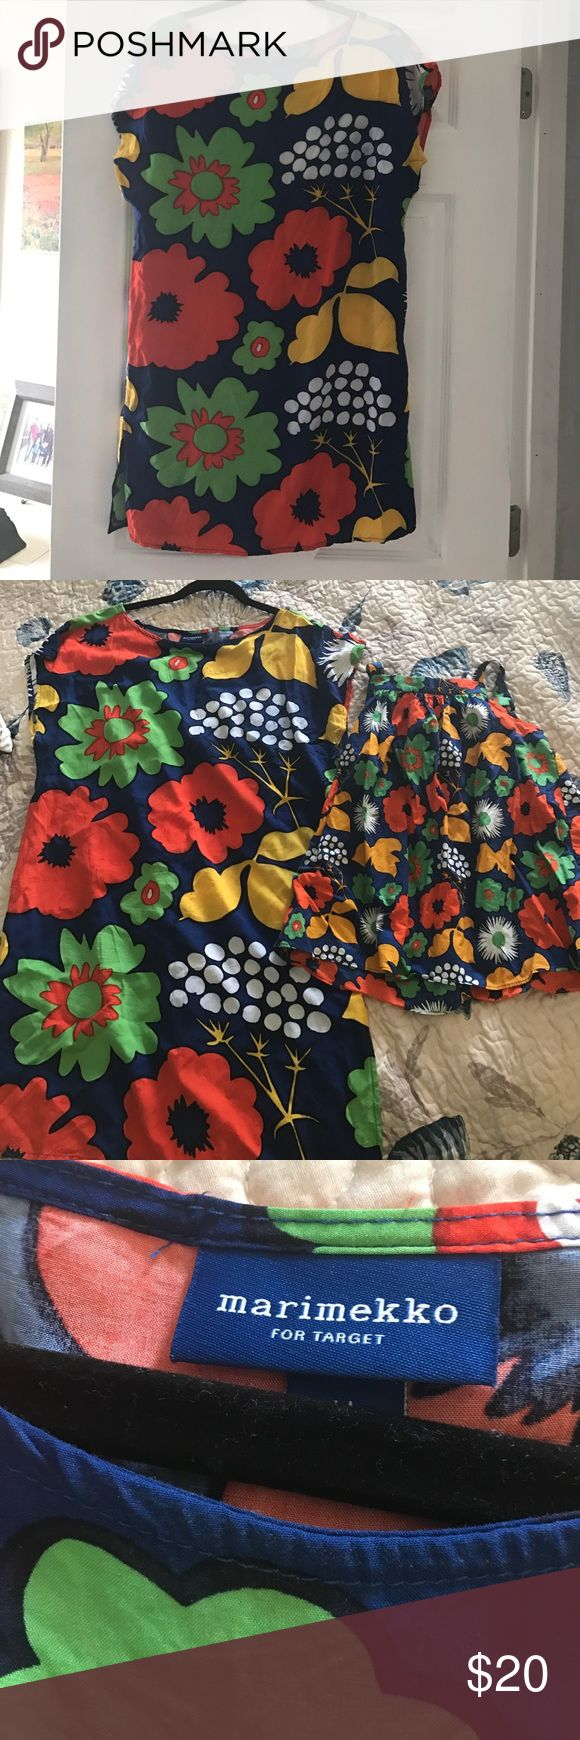 Marimekko for target cover up! Like new Worn once size medium brightly colored cover up. No signs of wear. Also have a 4t matching one for sale mommy and me! Swim Coverups